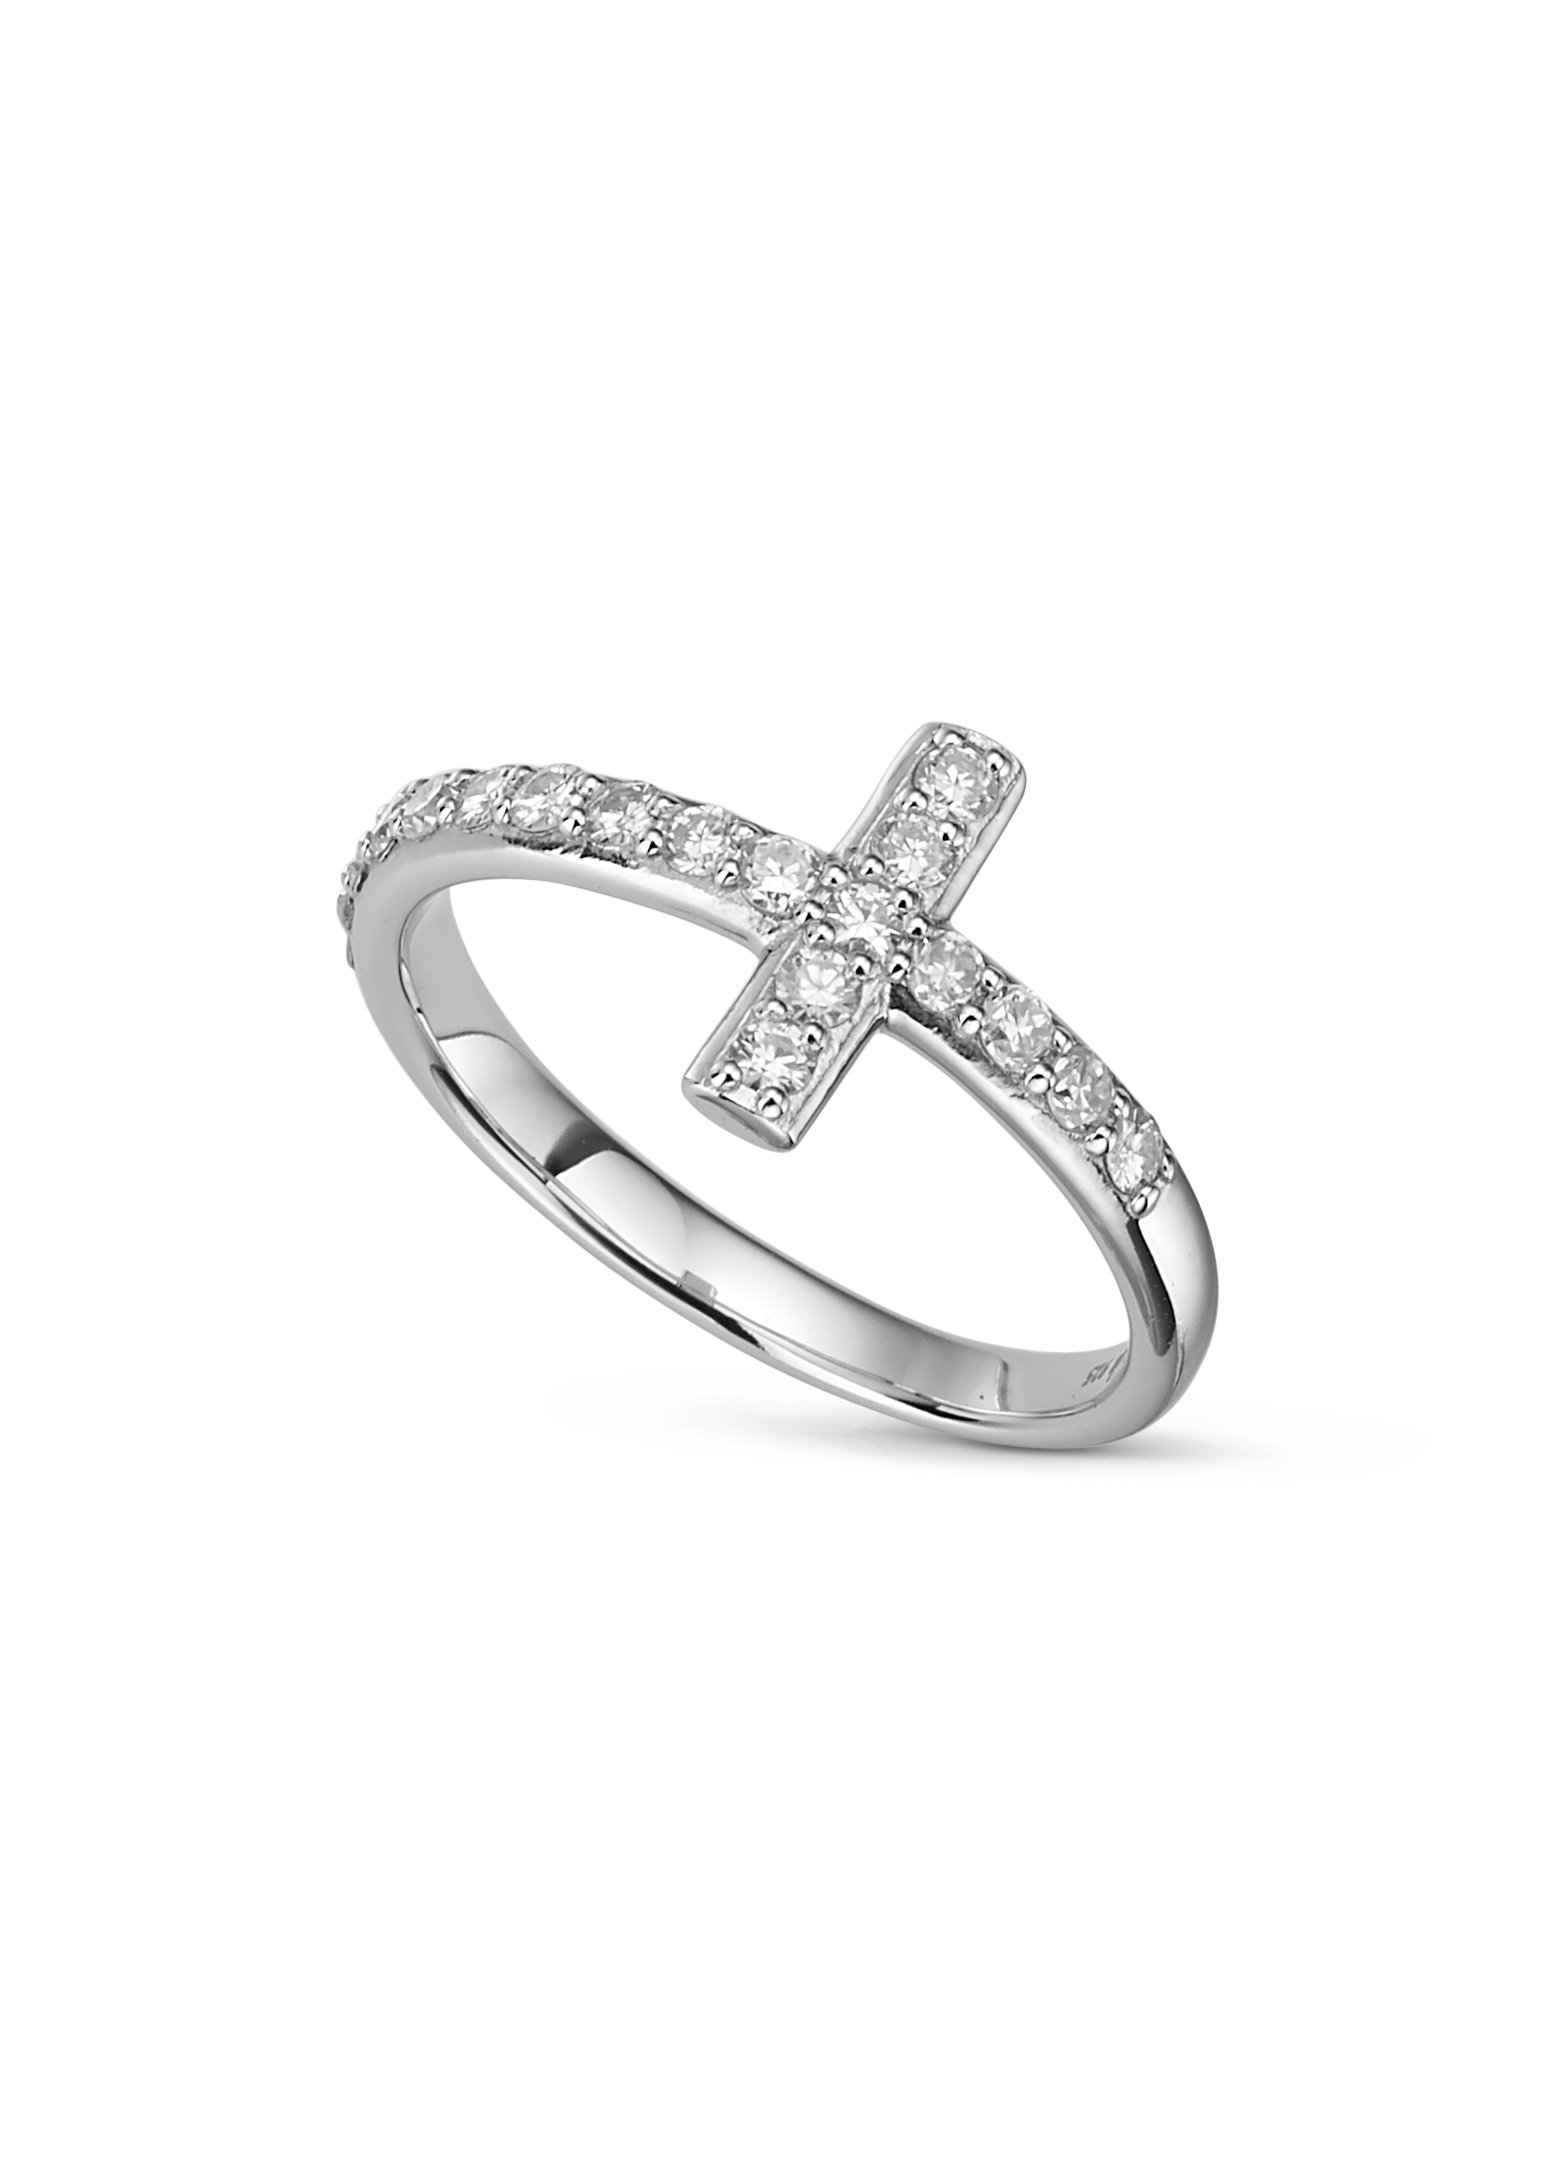 Round Brilliant Cut 1.8mm Moissanite Pave Cross Ring size 8, 0.48cttw DEW by Charles & Colvard